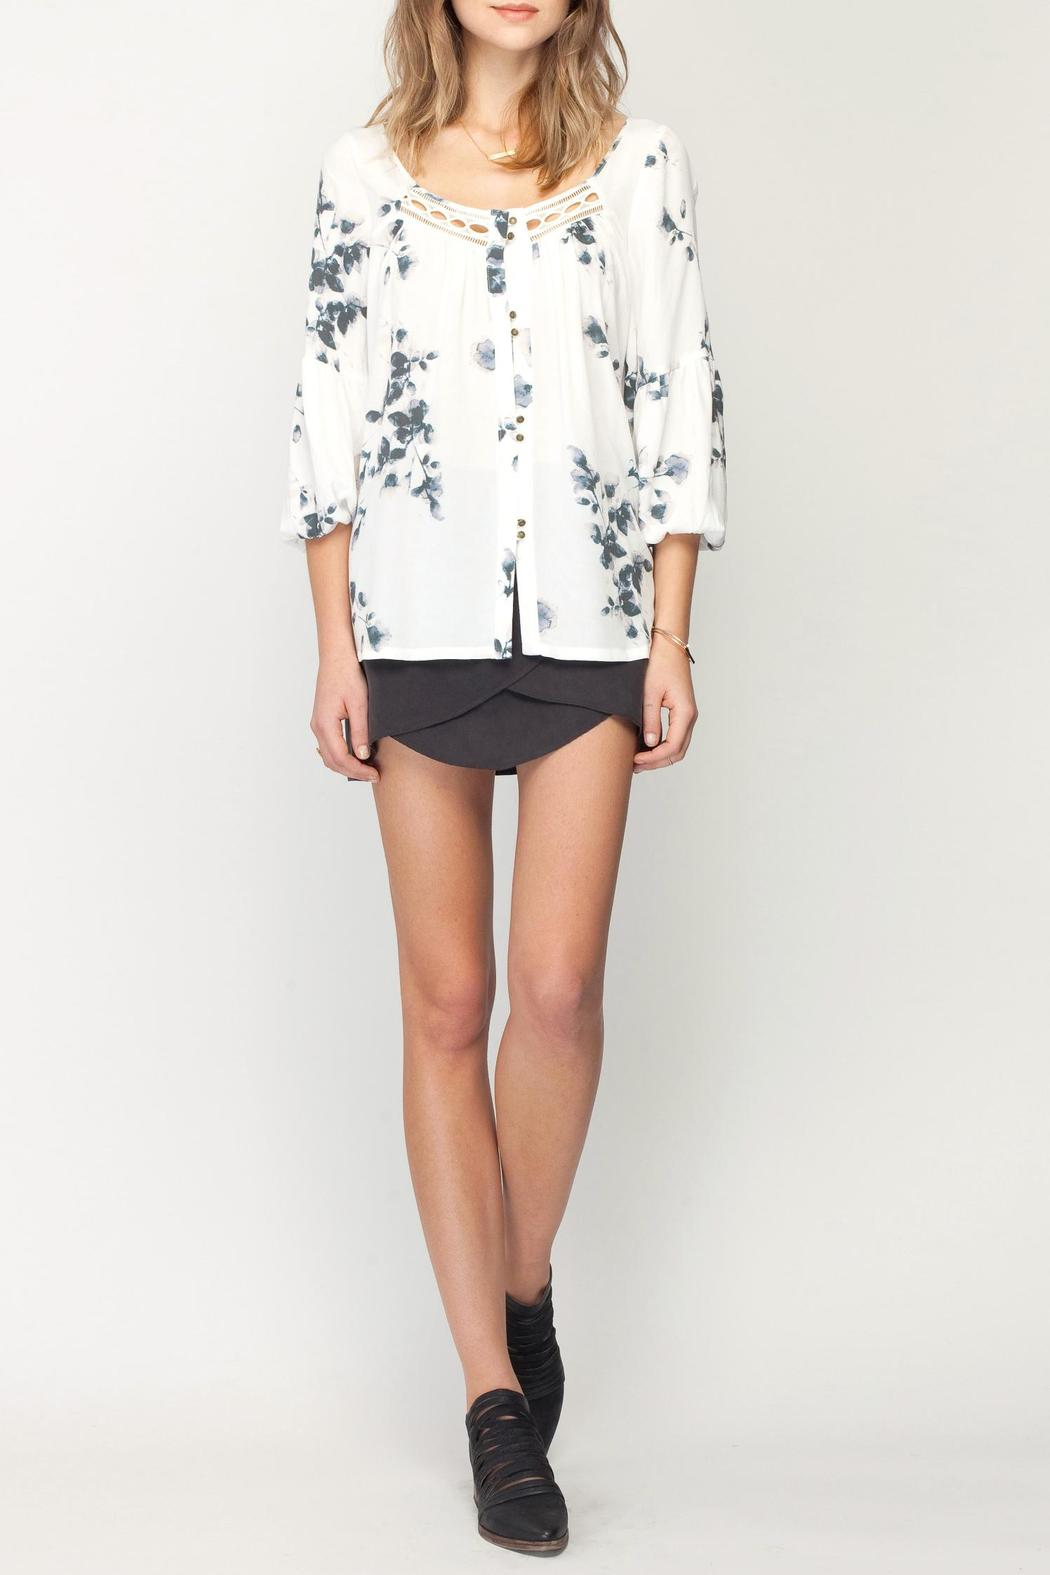 Gentle Fawn Botanical Print Top - Front Full Image